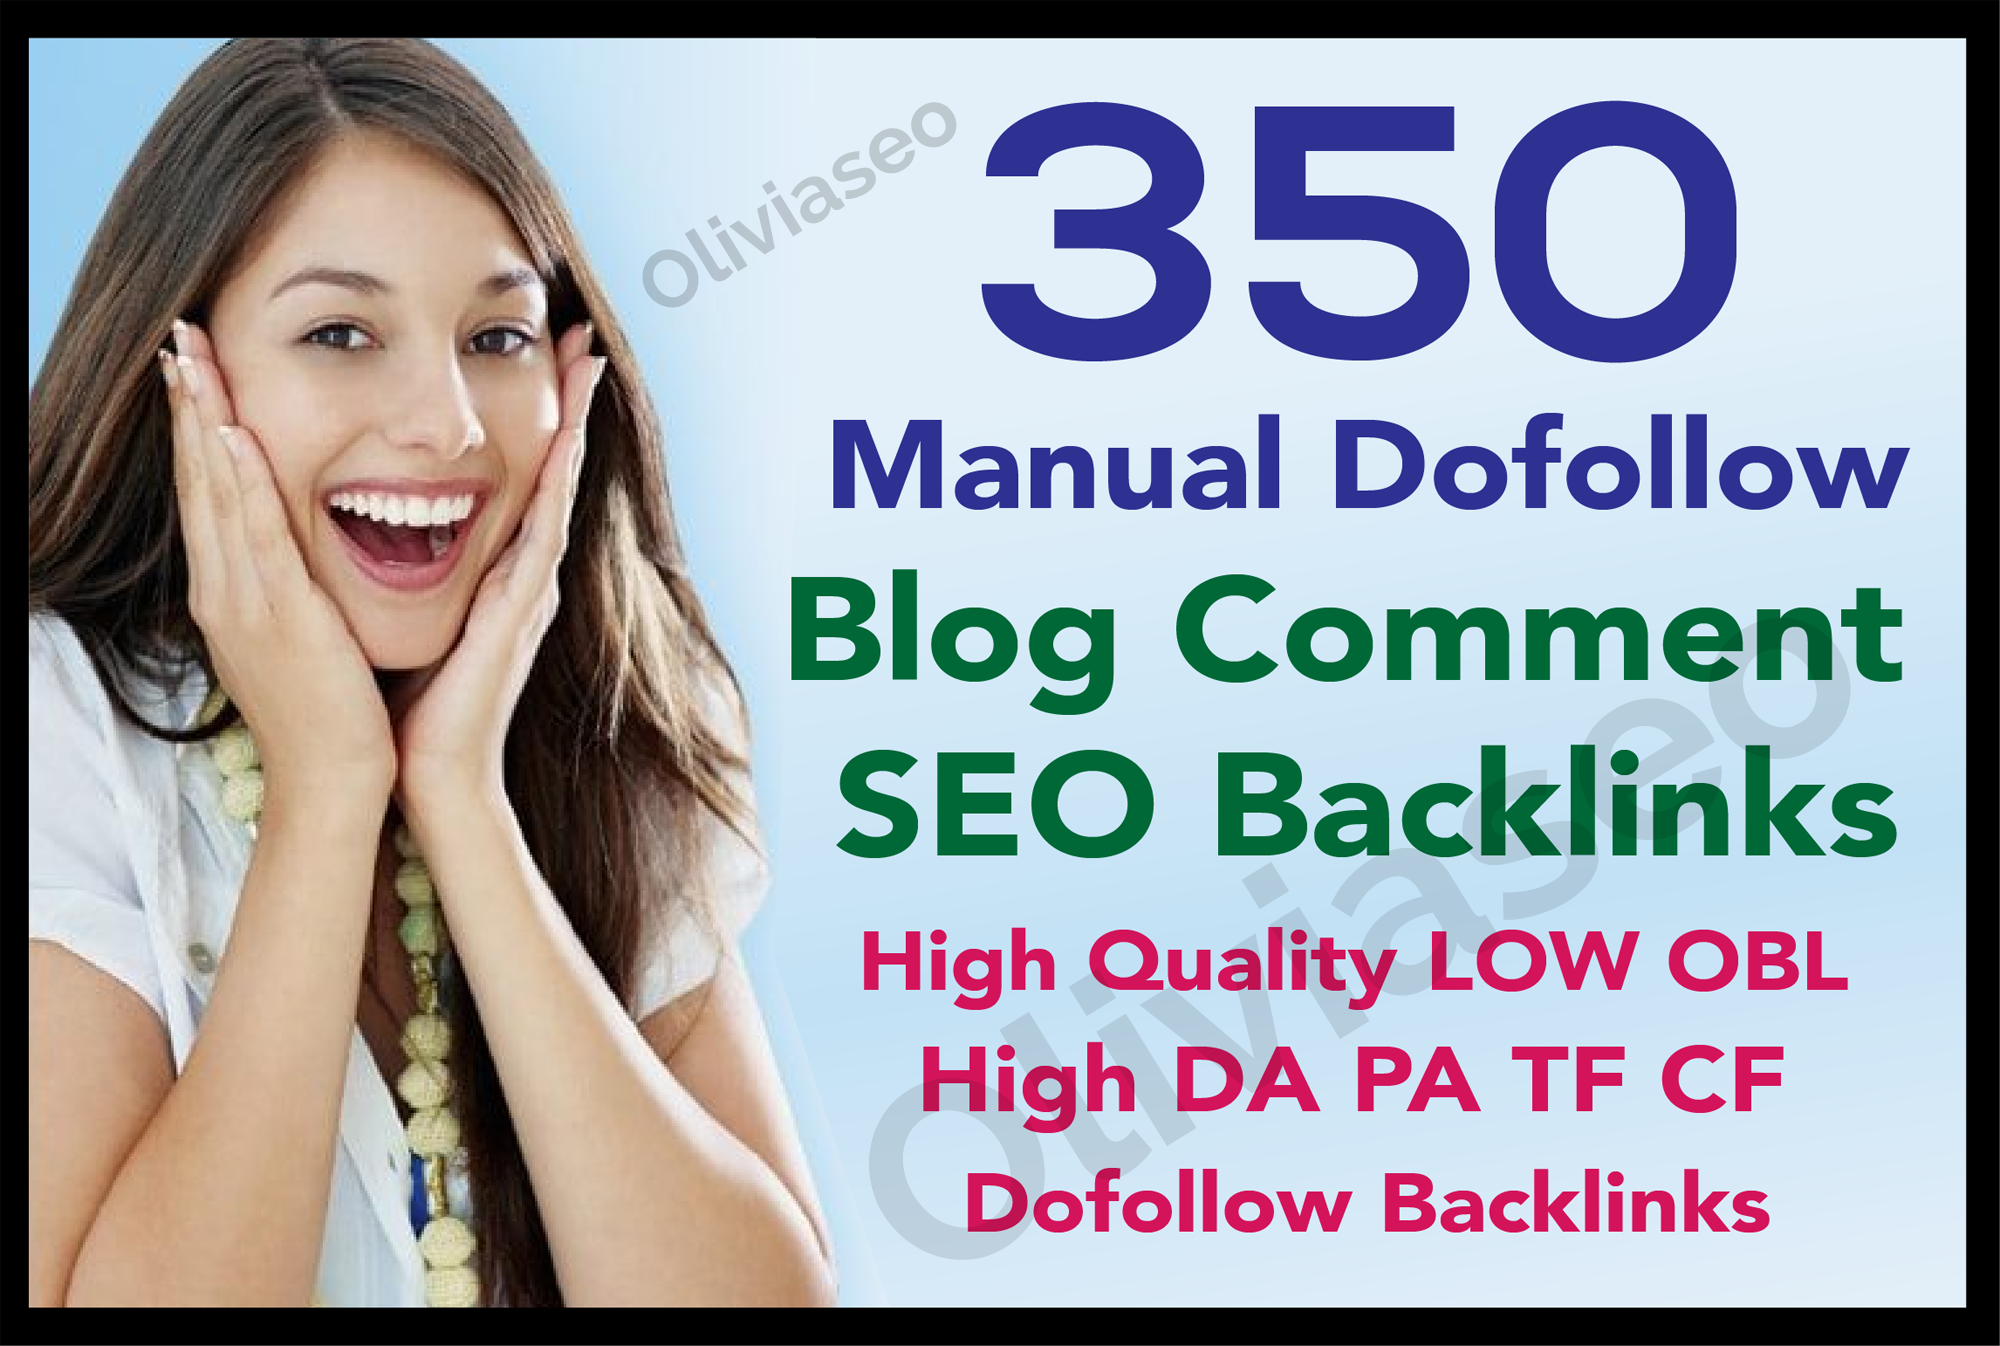 Provide 350 Manual Dofollow Blog Comment Low OBL Backlink